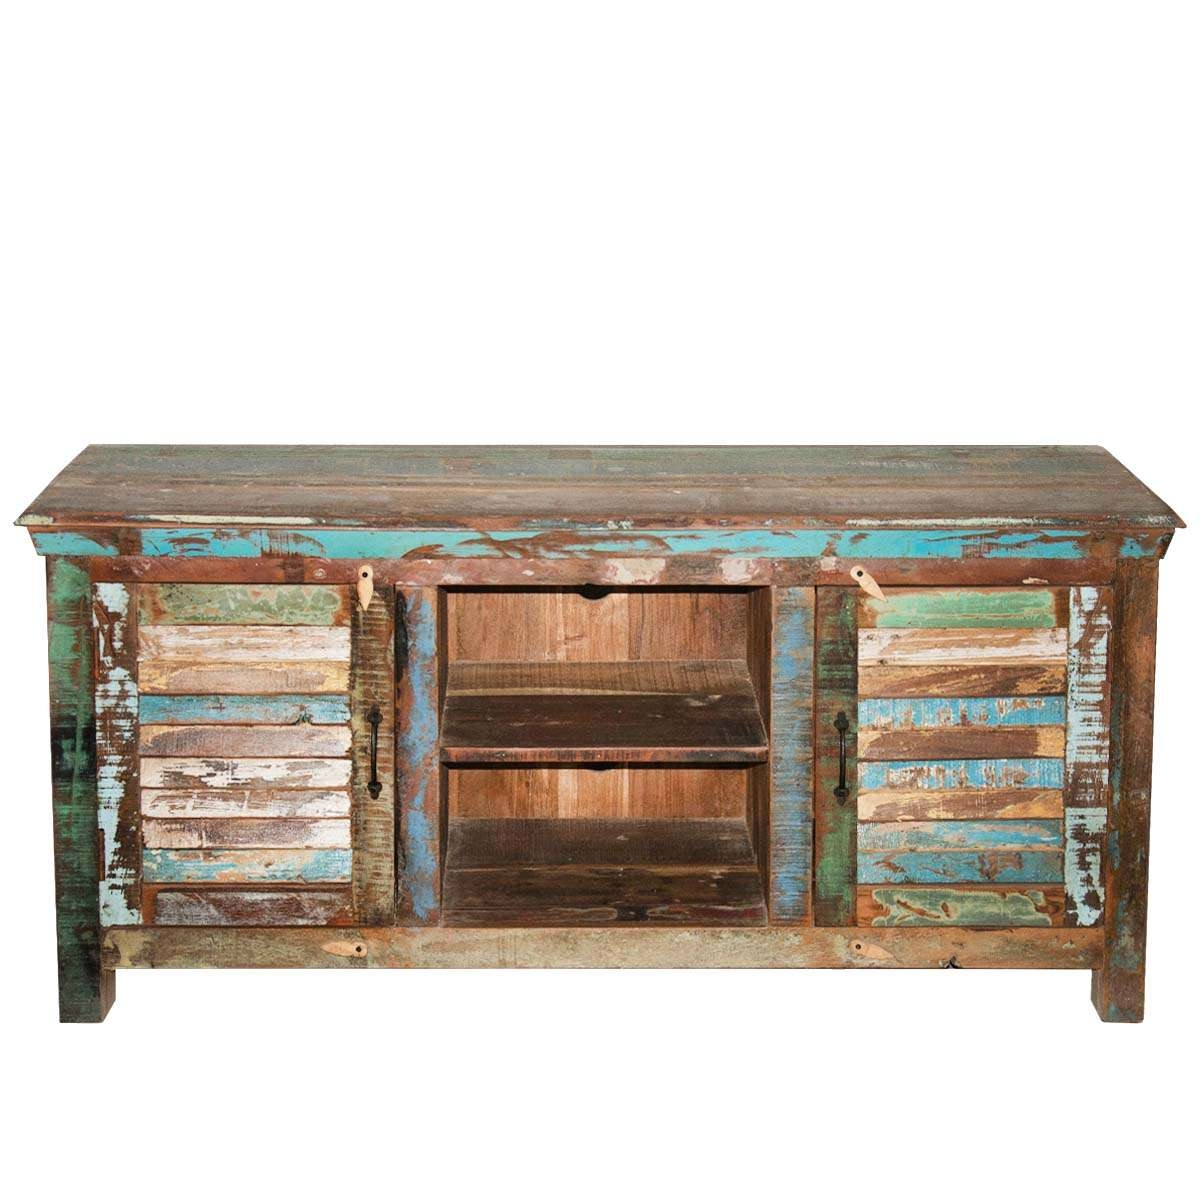 Rustic Tv Stands And Cabinets Tags : 37 Formidable Rustic Tv Stand Inside Rustic Tv Stands (View 16 of 20)